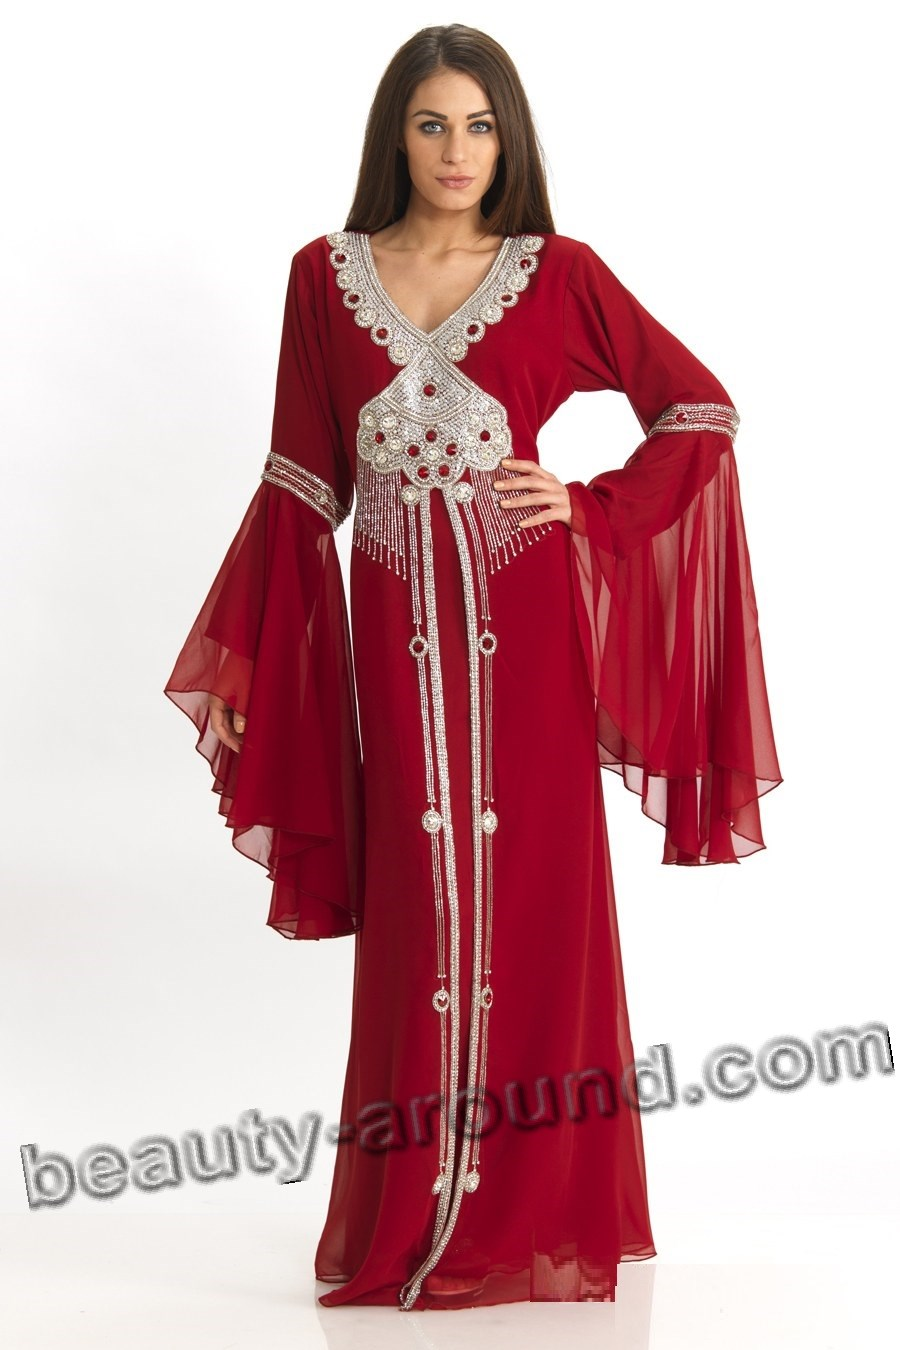 Muslim women silk caftans pictures